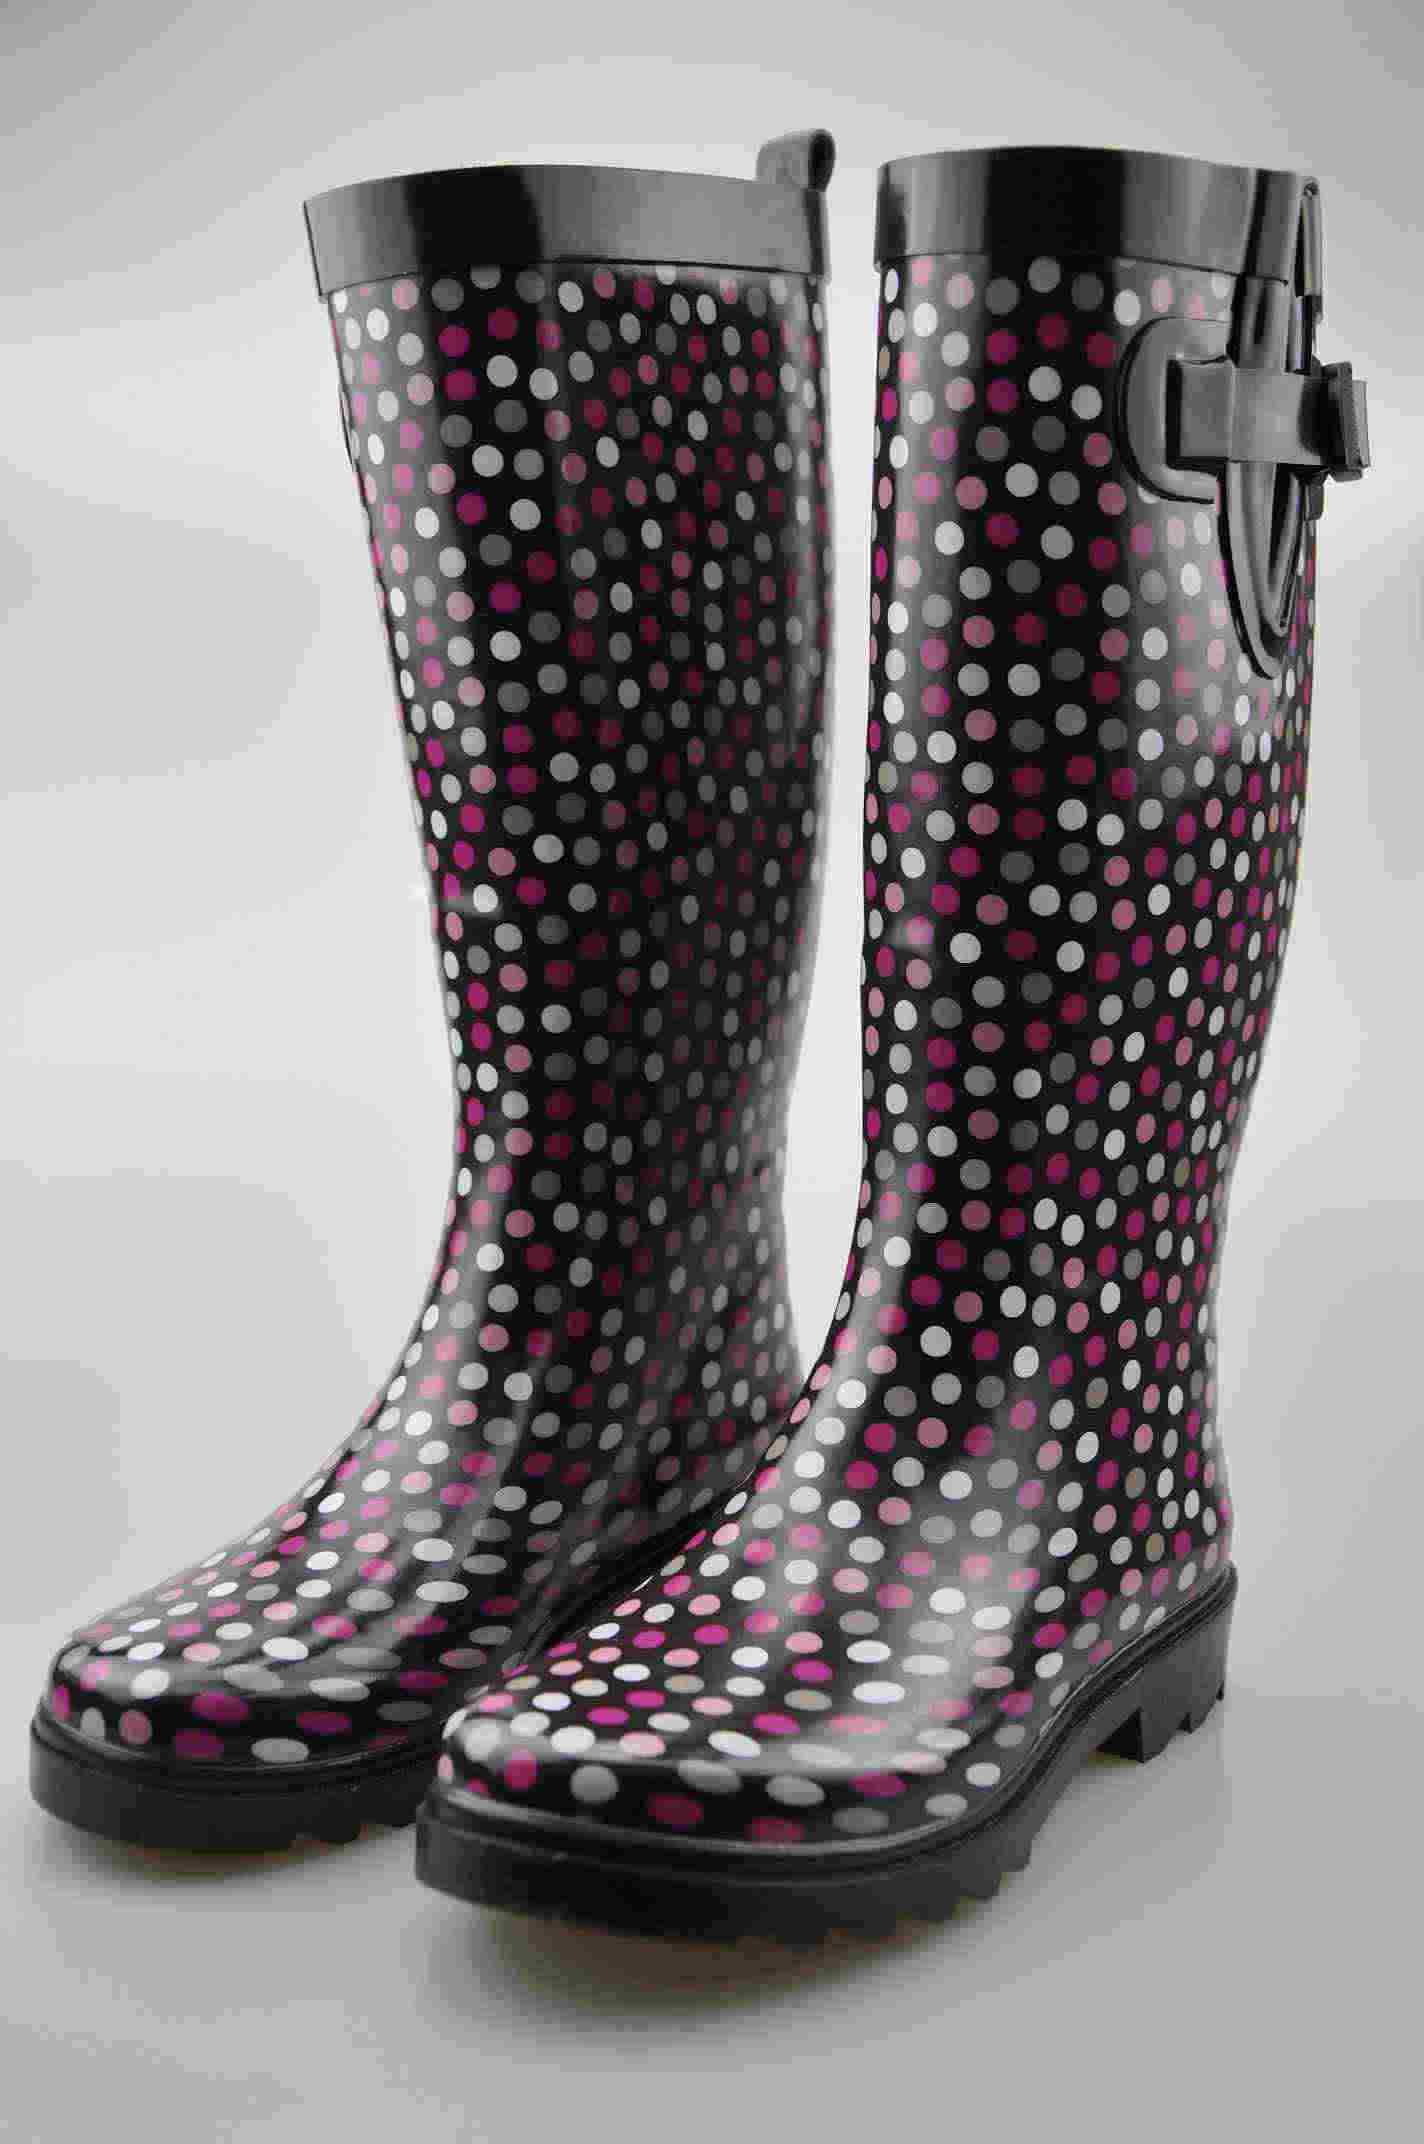 Wonderful Here Are 10 Places To Get Stylish Womens Rain Boots In Vancouver Lets Start With The Most Obvious Option Hudsons Bay Offers A Wide Selection Of Rain Boots, From Cute Ankle Boots, To The Classic Hunters Vancouverites Have Come To